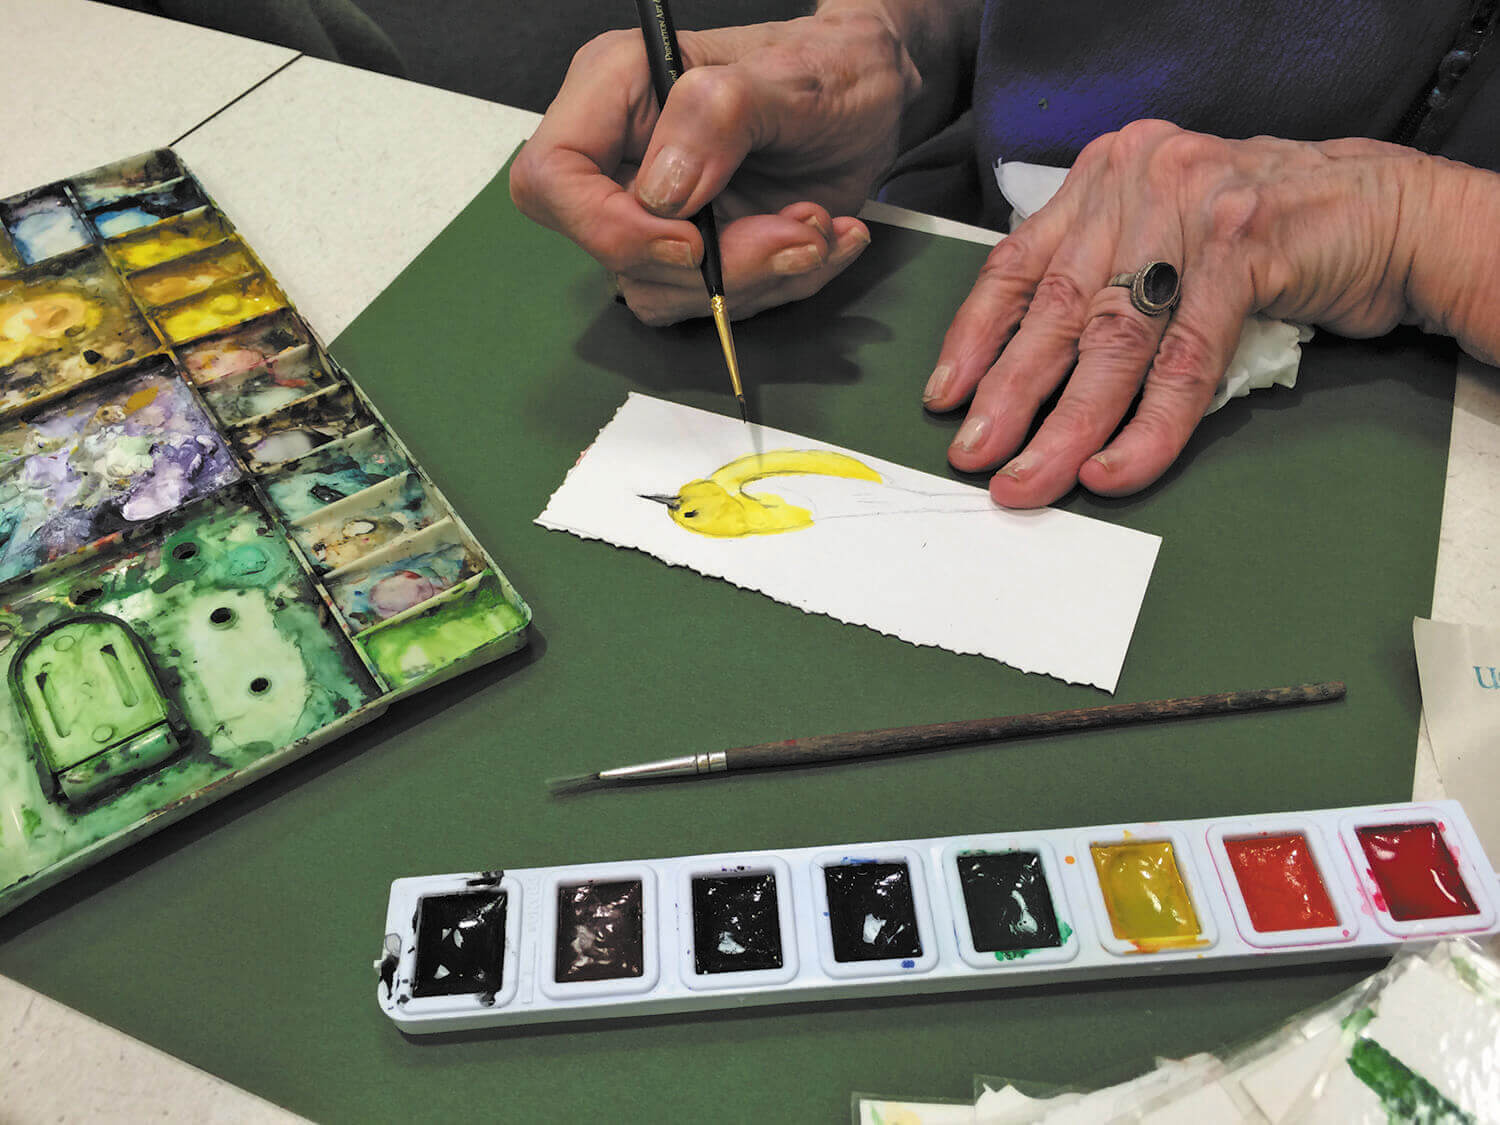 Craft Acts as a Fuel for Mental Health